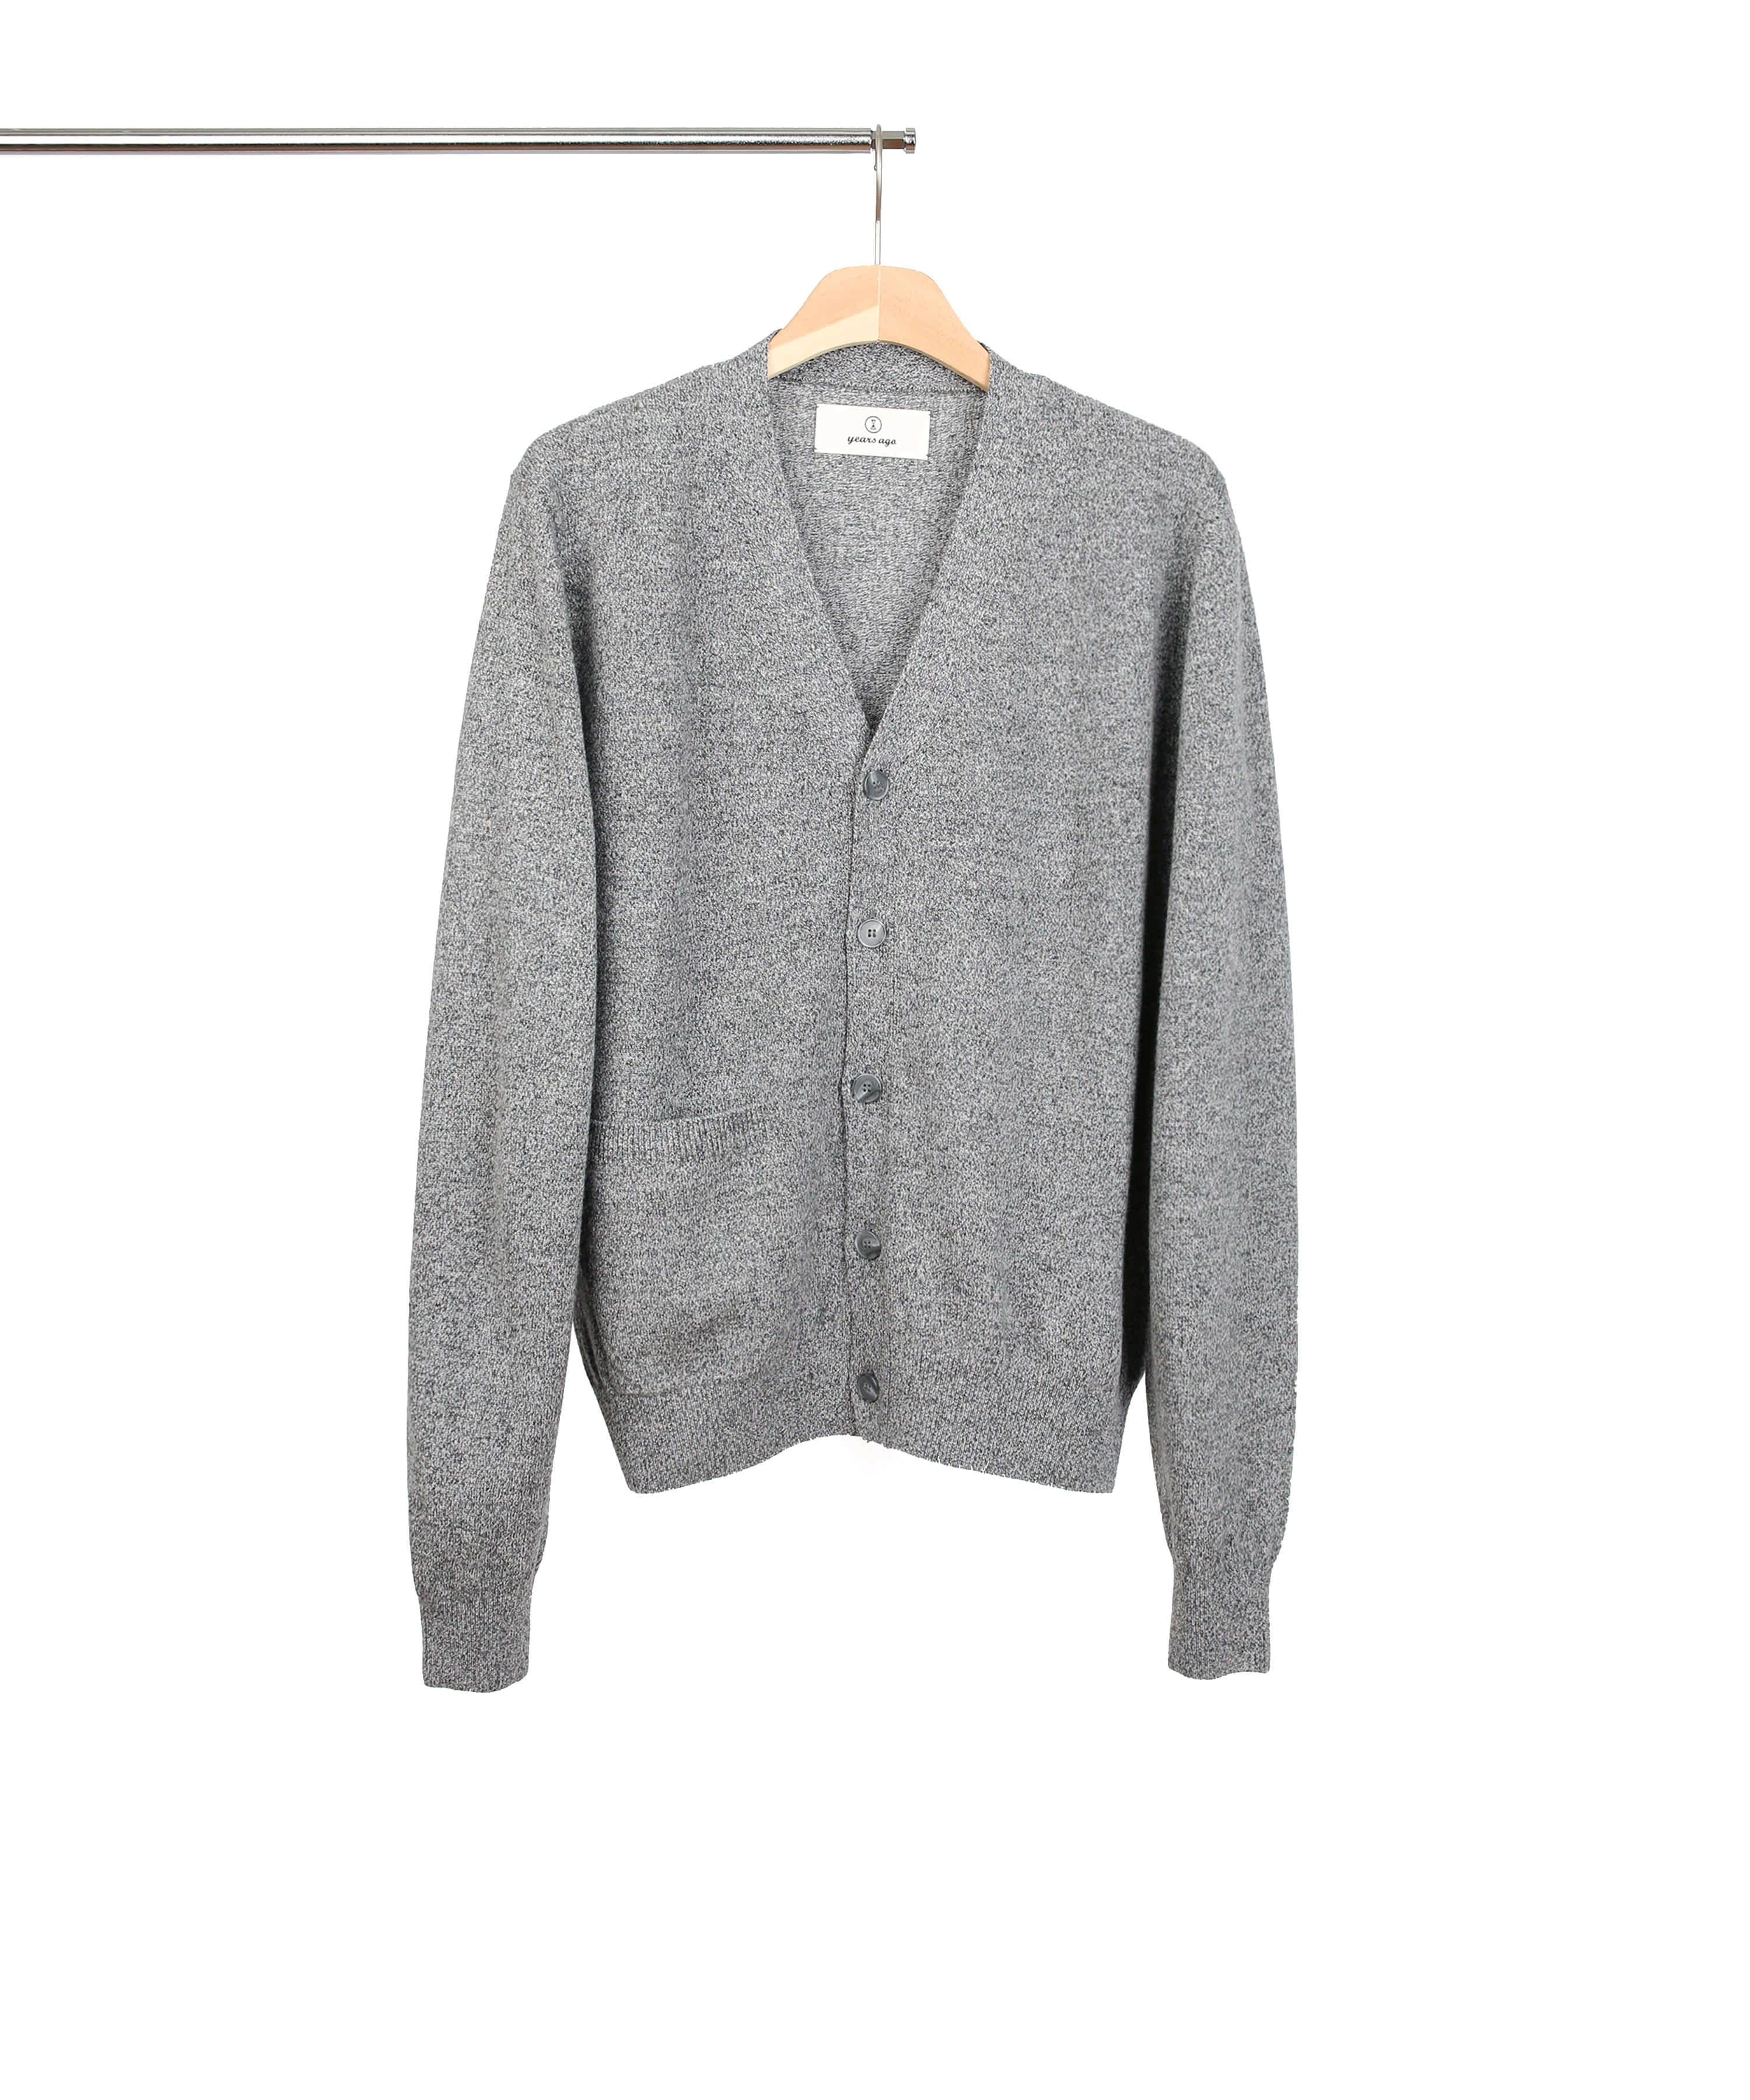 TWEED GREY ROVER WOOL CARDIGAN 02